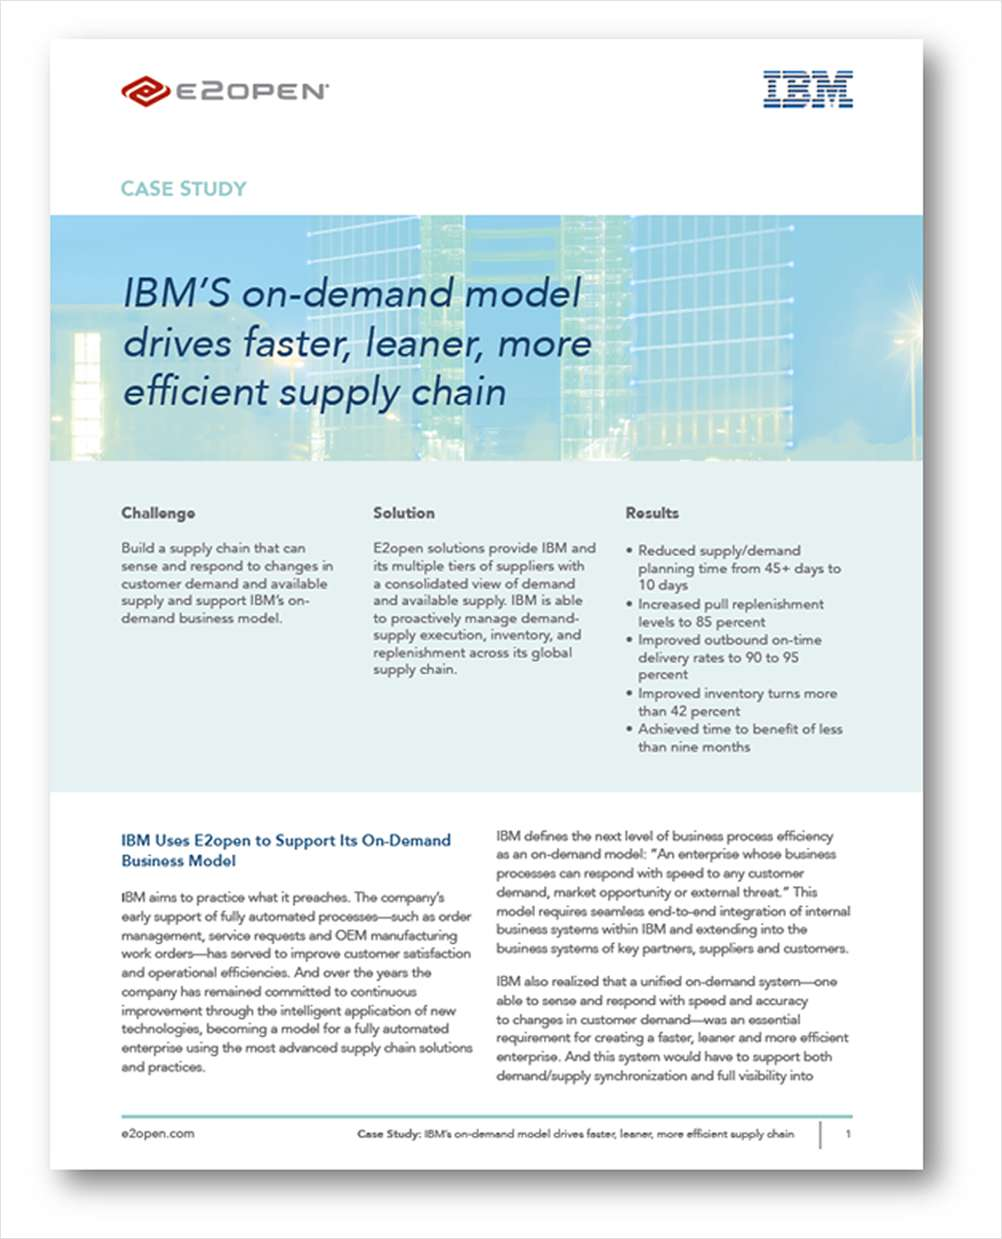 IBM's On-Demand Model Drives Faster, Leaner, More Efficient Supply Chain